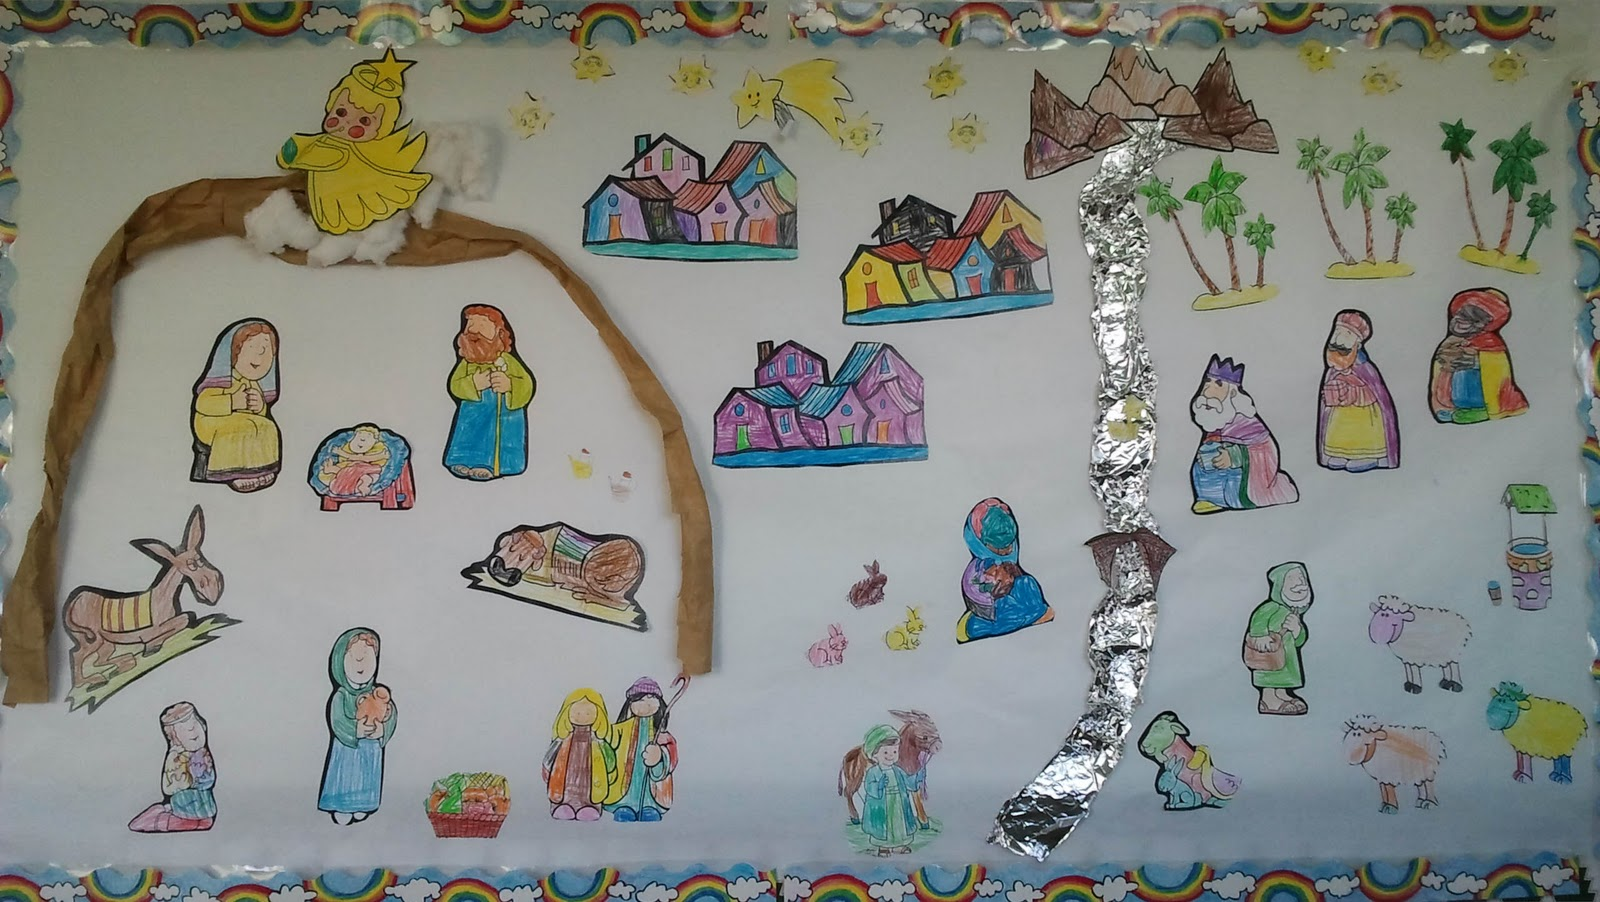 The earth is our home diciembre 2011 - Mural navidad infantil ...